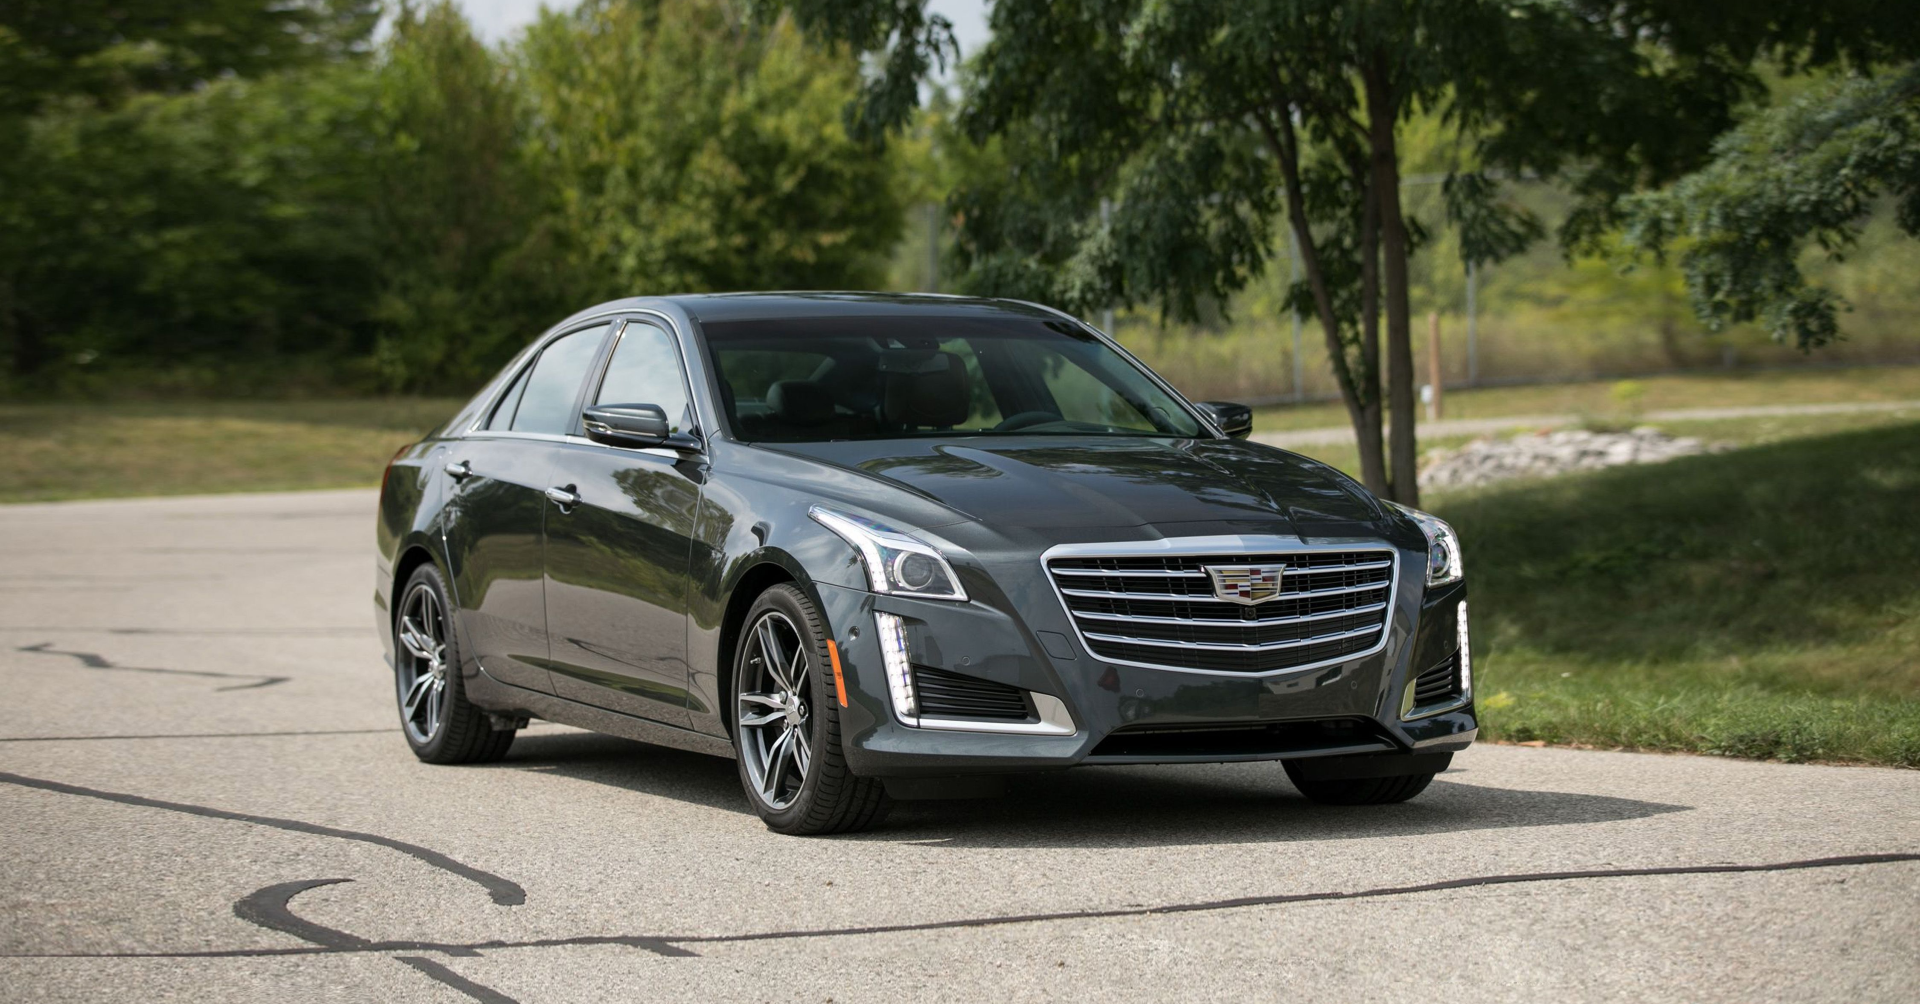 Remaining Cadillac CTS Sedan Models for You